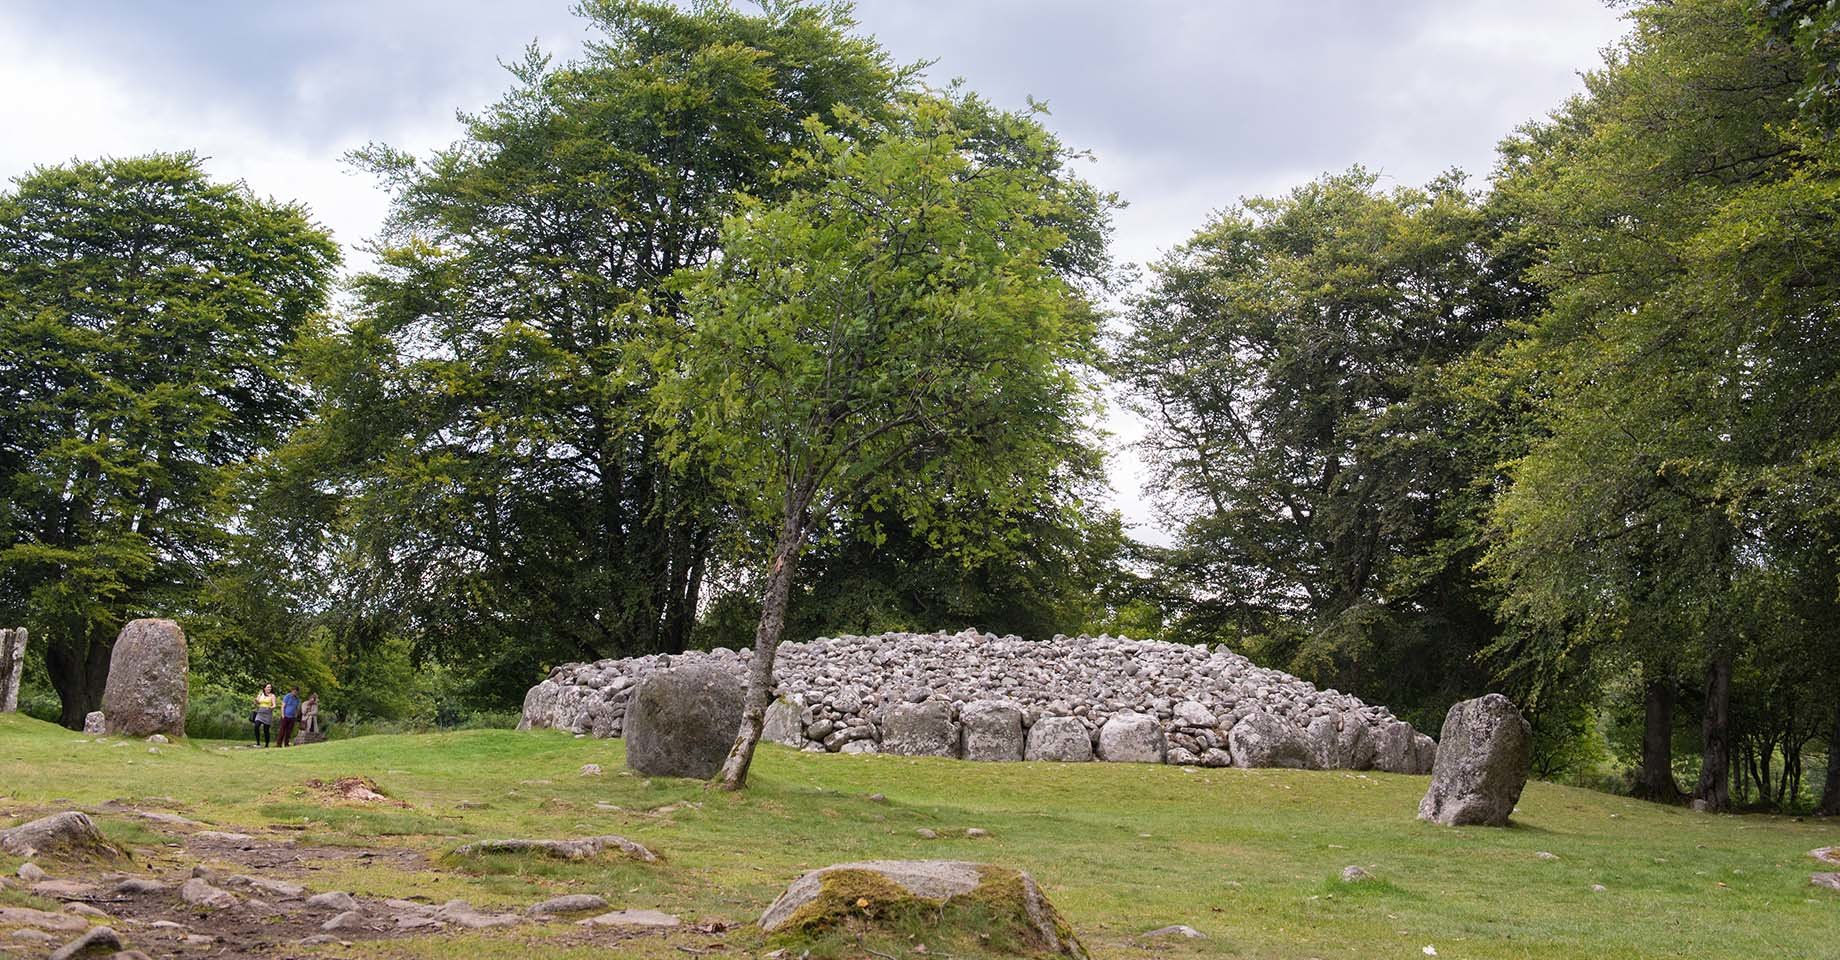 These well-preserved Clava cairns date back about 4000 years